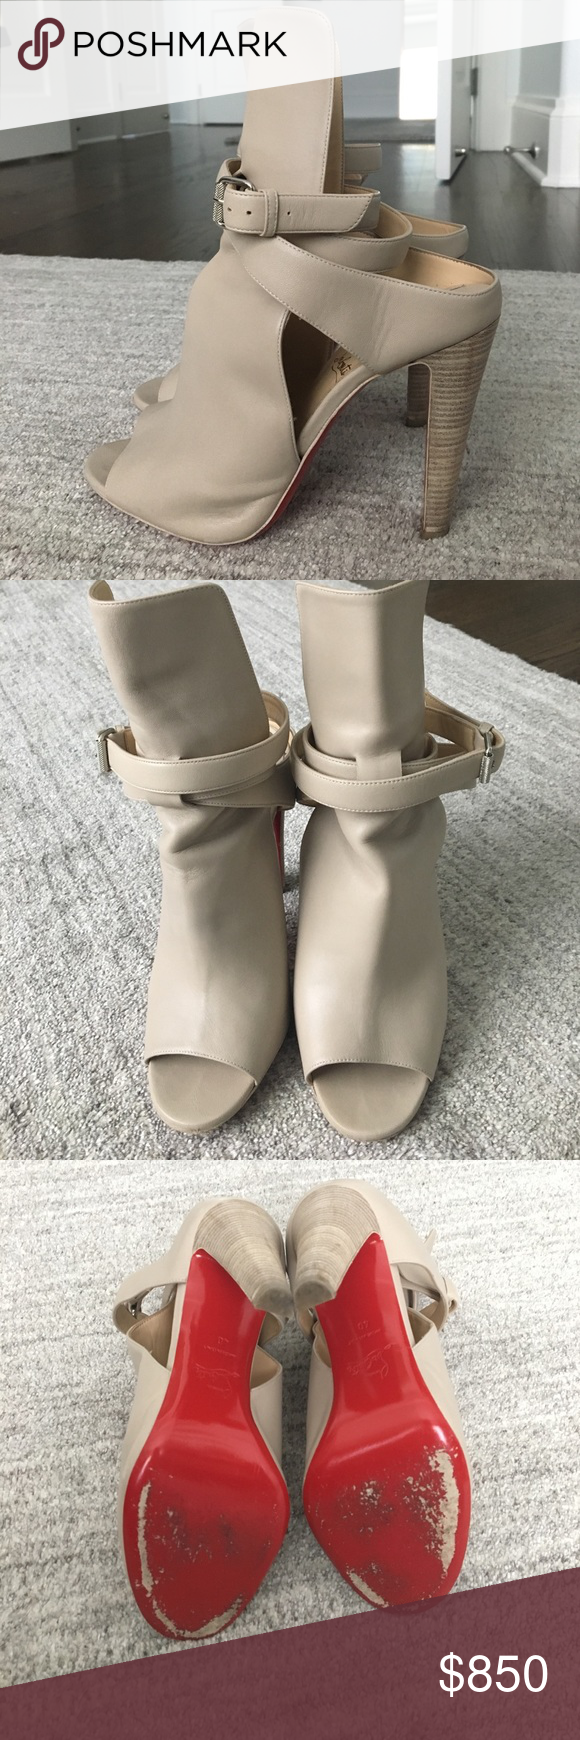 3652de4bb56a Christian Louboutin Hippik Christian Louboutin hippik 100 cut out leather  ankle boots. Dustbag and box included. Christian Louboutin Shoes Ankle Boots    ...